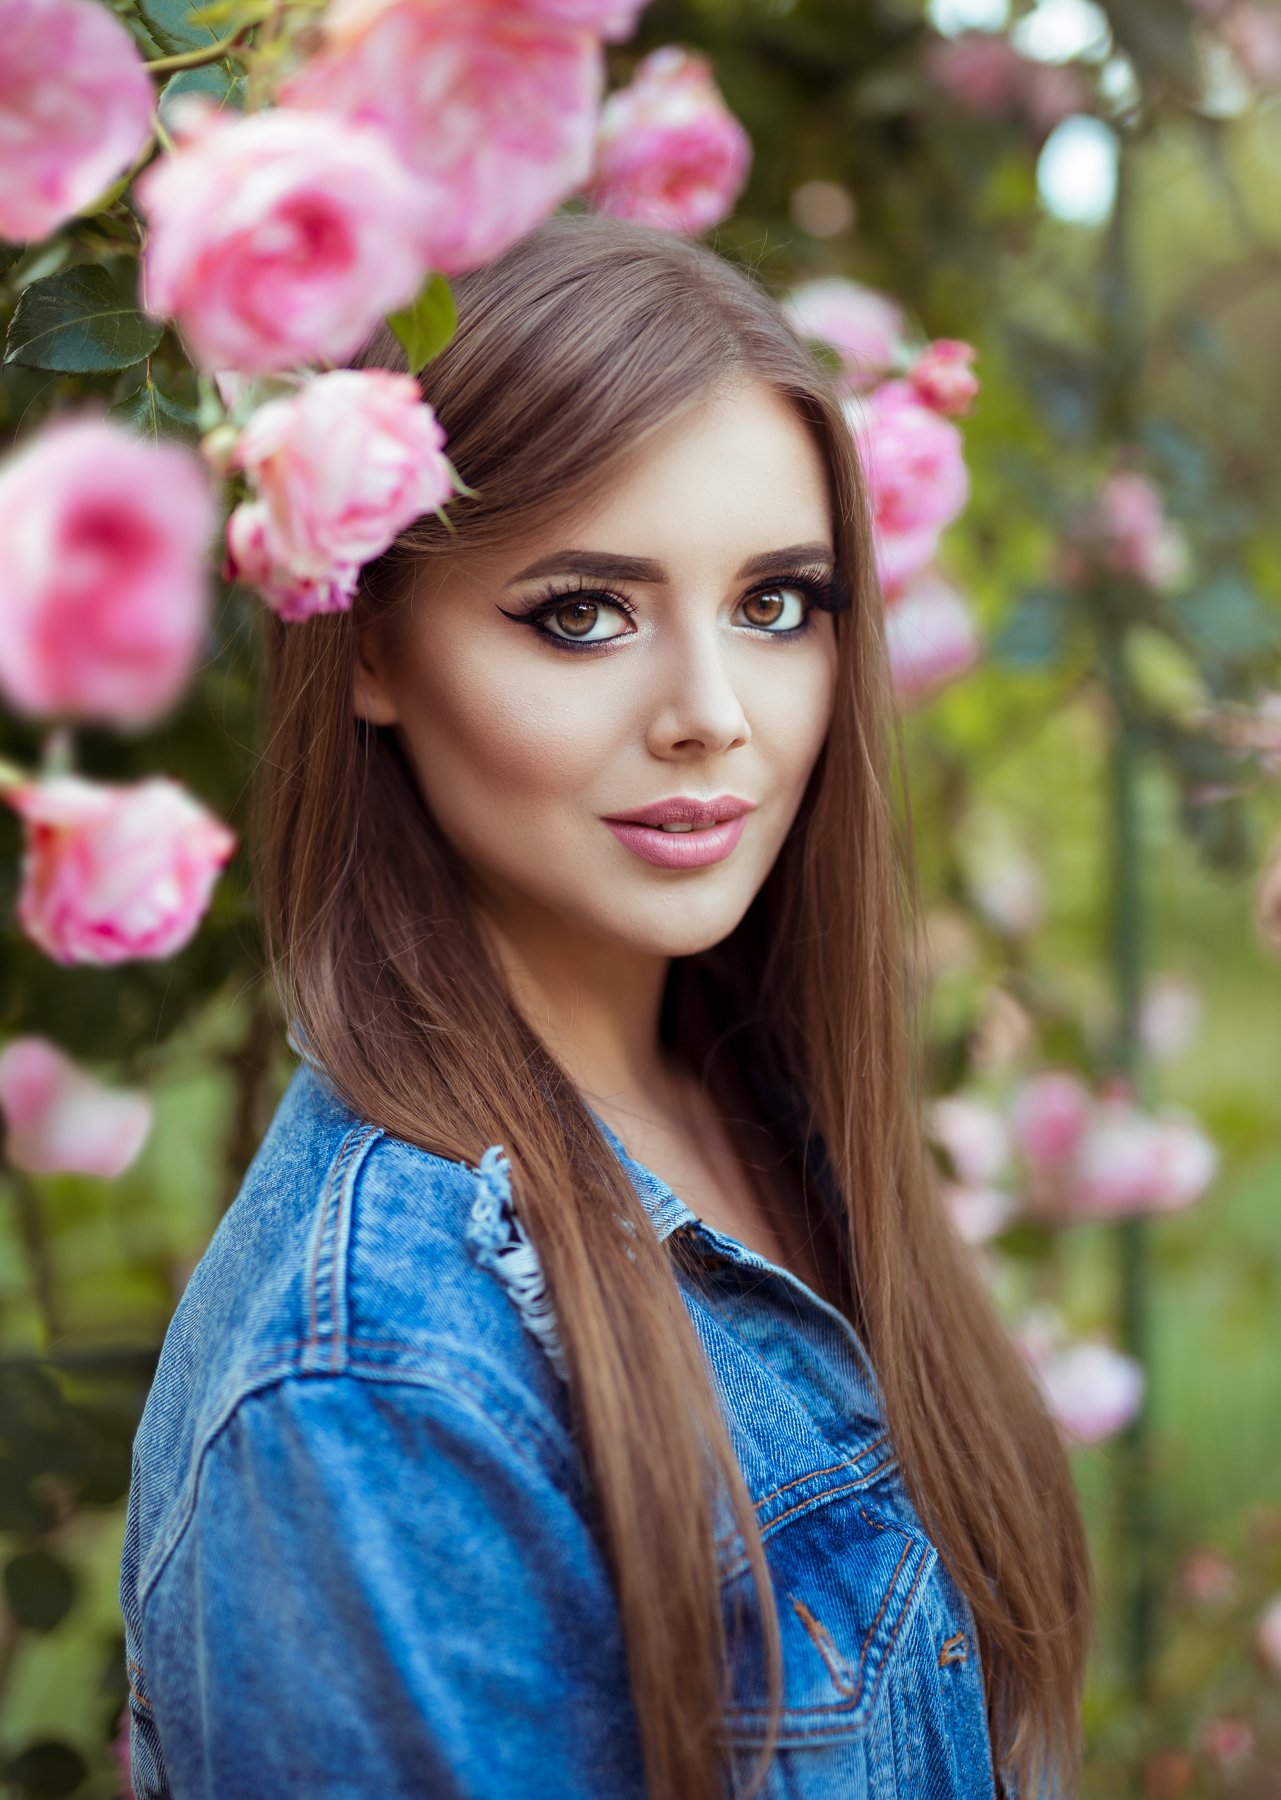 girl, model, beauty, summer, color, canon, retouch, photography, big, eyes, cute, face, natural, light, outdoor, people, fashion, pink, flower, 135mm, bokeh, art, Andrei Marginean